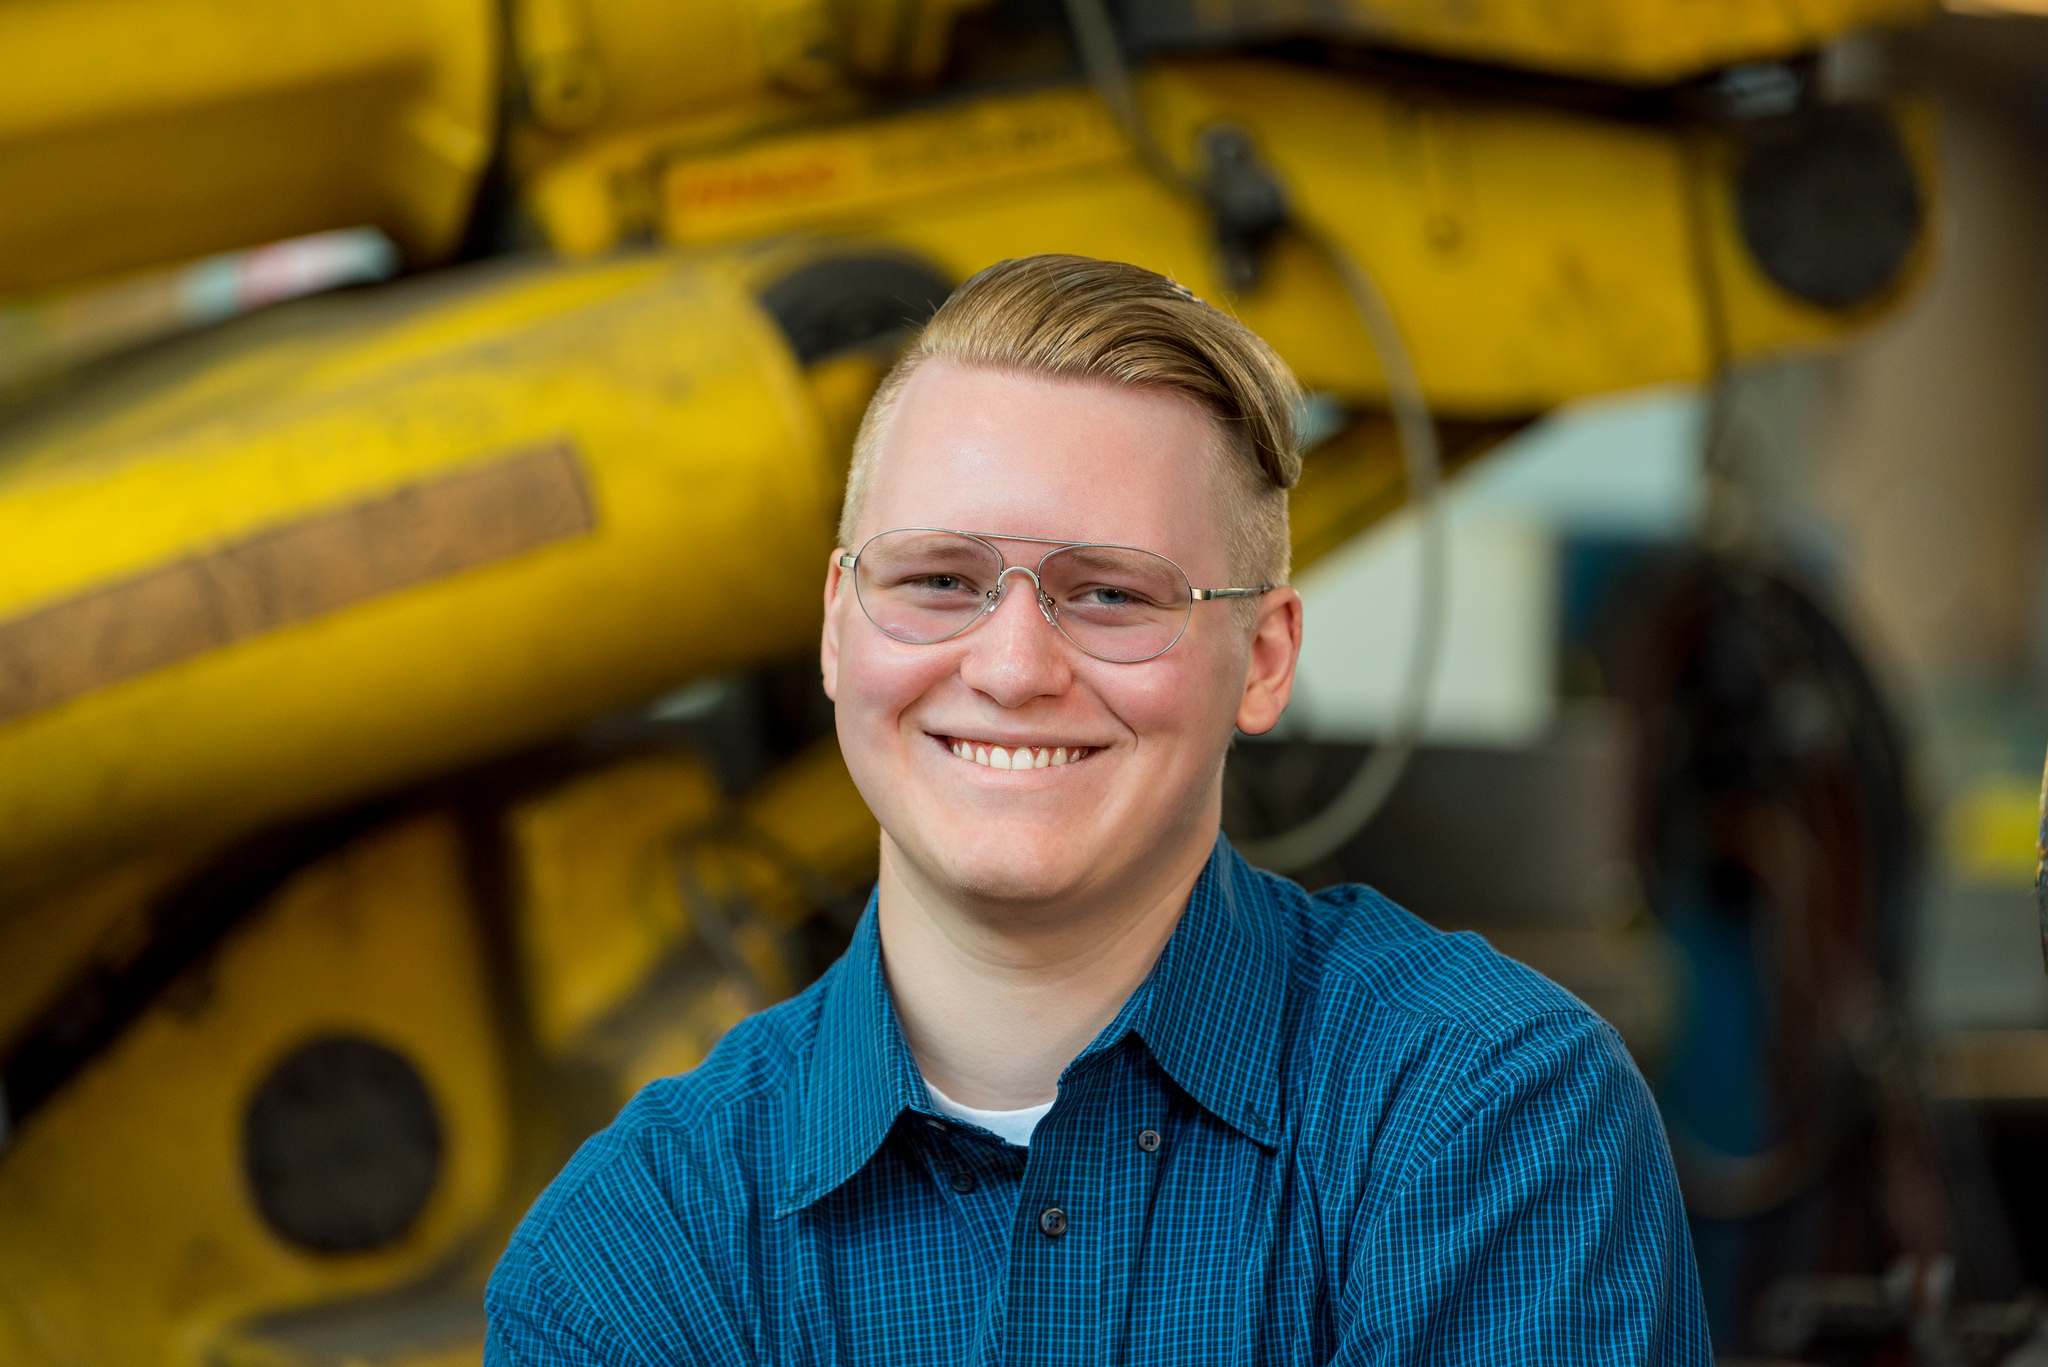 John Willett senior picture at HGR Industrial Surplus